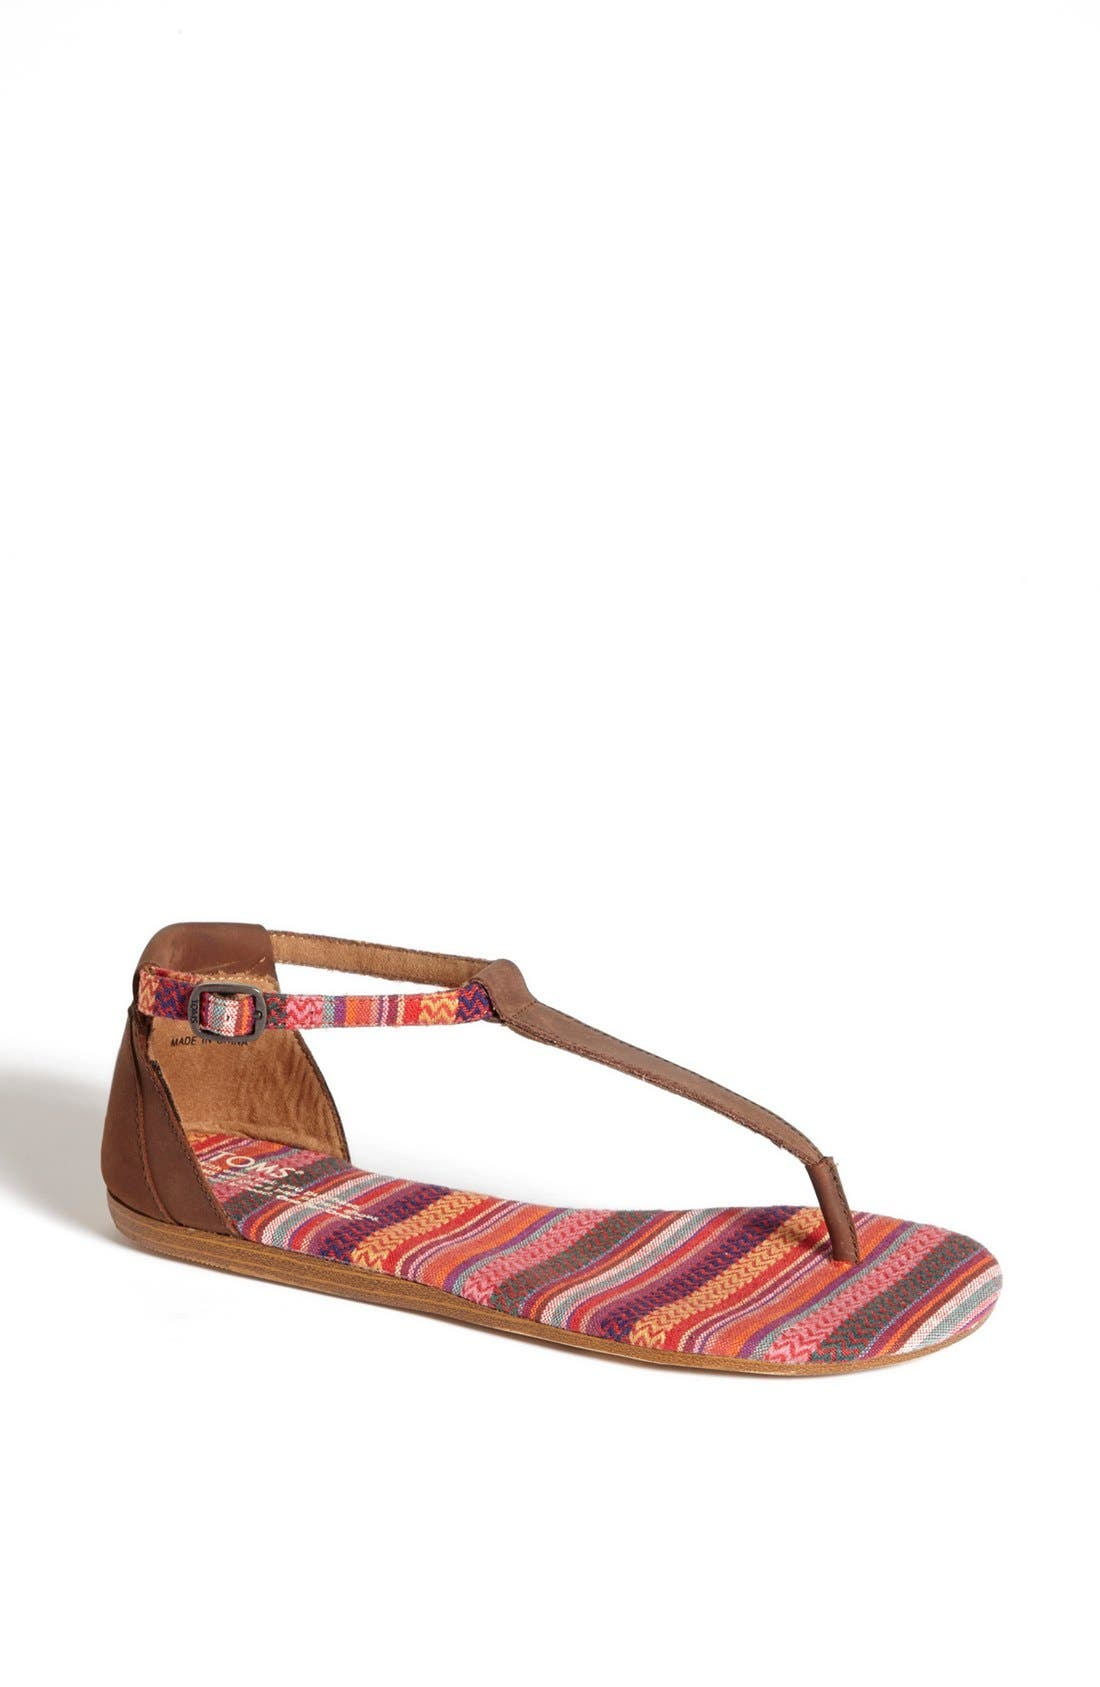 Alternate Image 1 Selected - TOMS 'Playa' T-Strap Flat Sandal